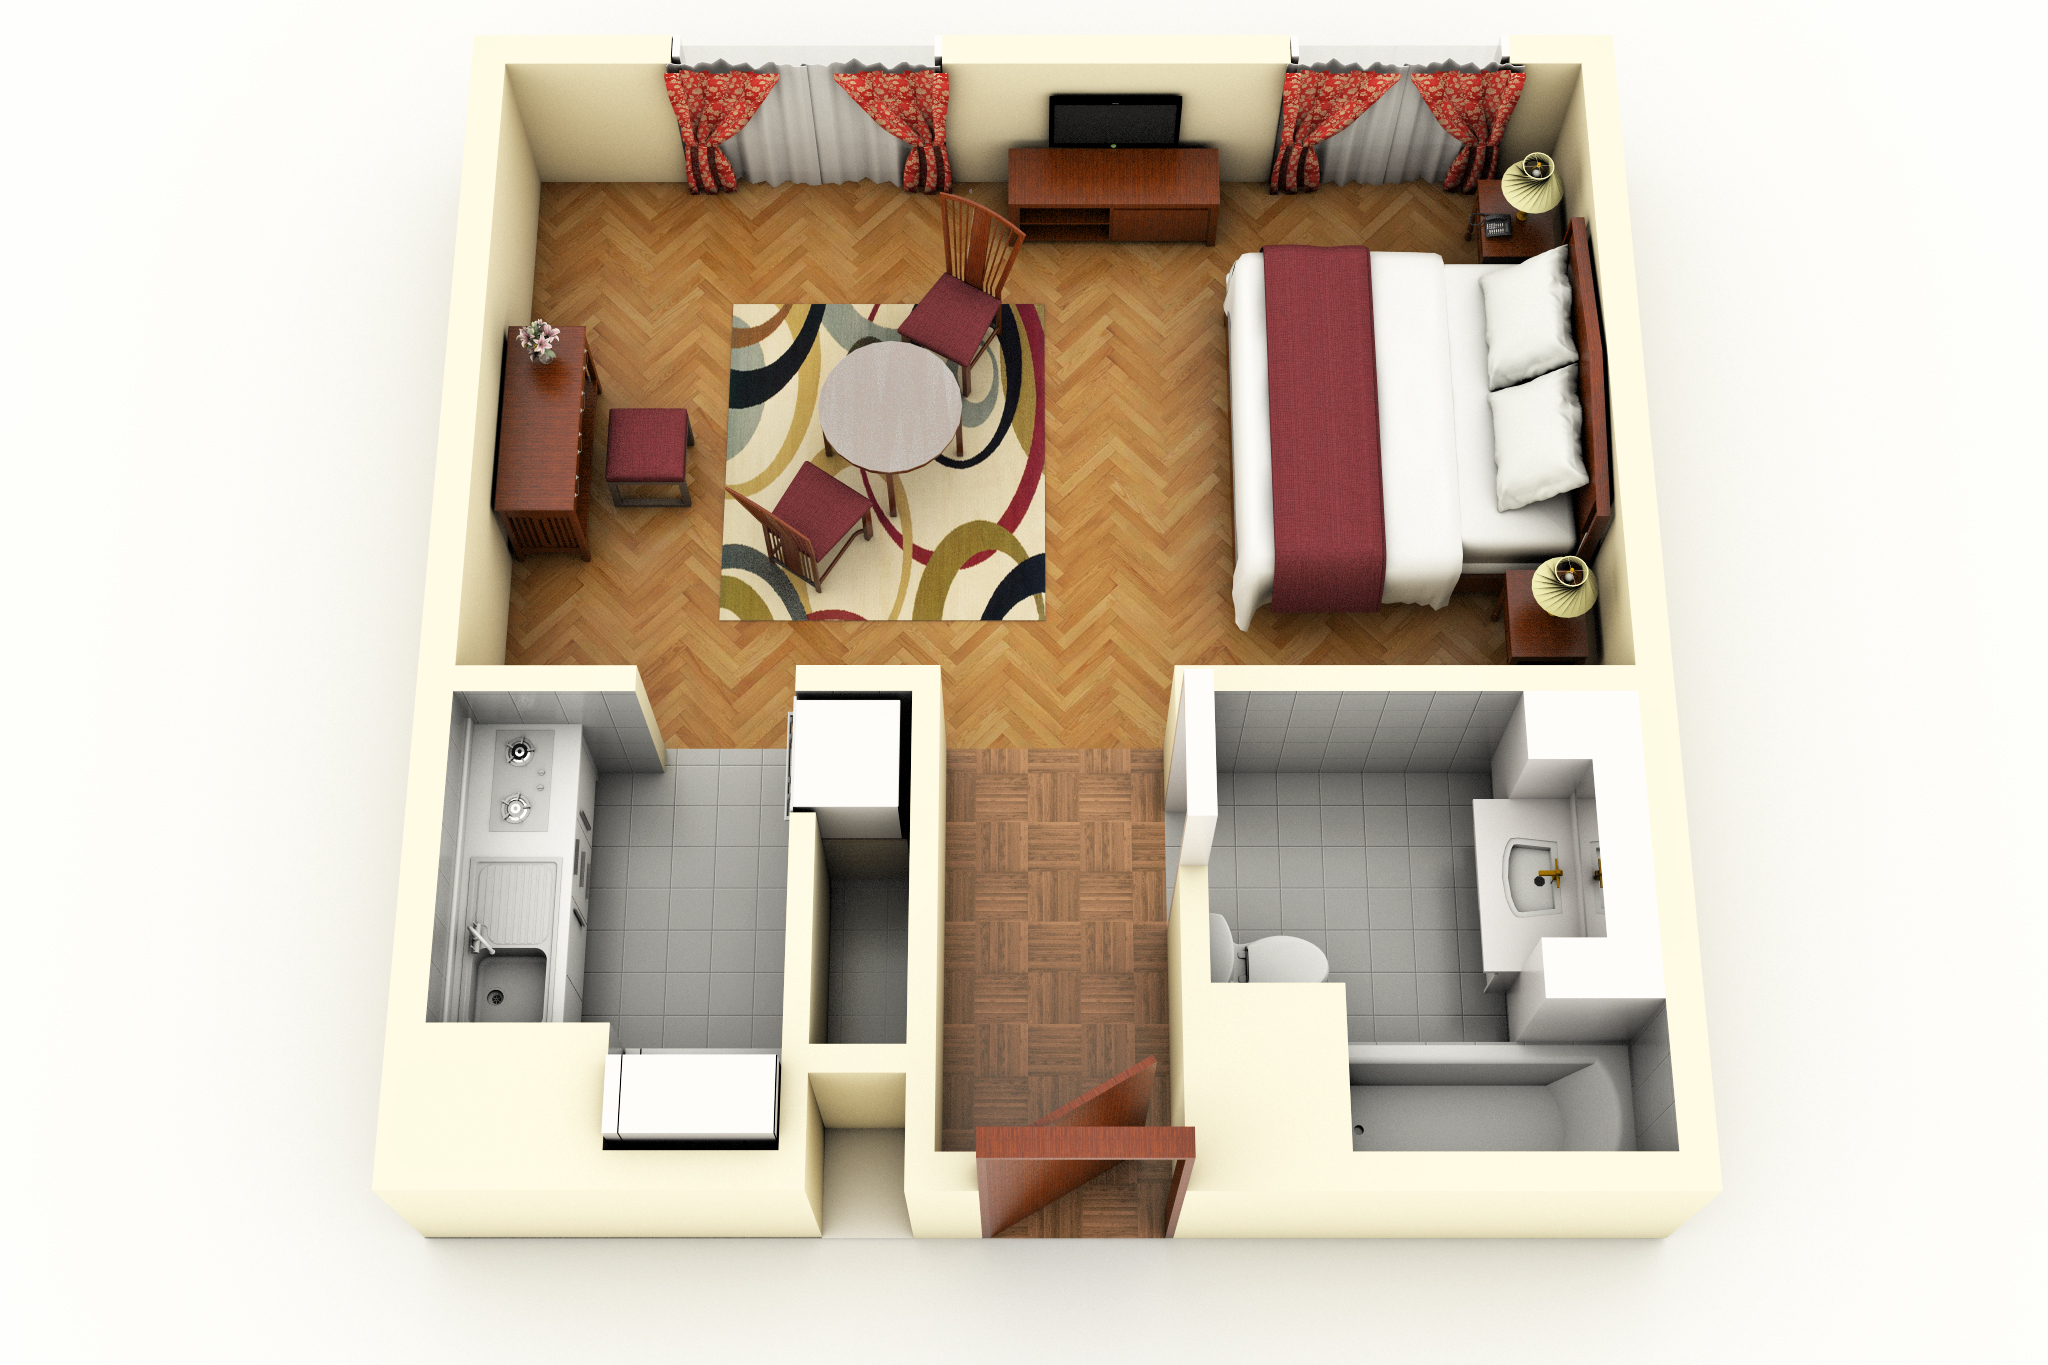 Deluxe Room floorplan